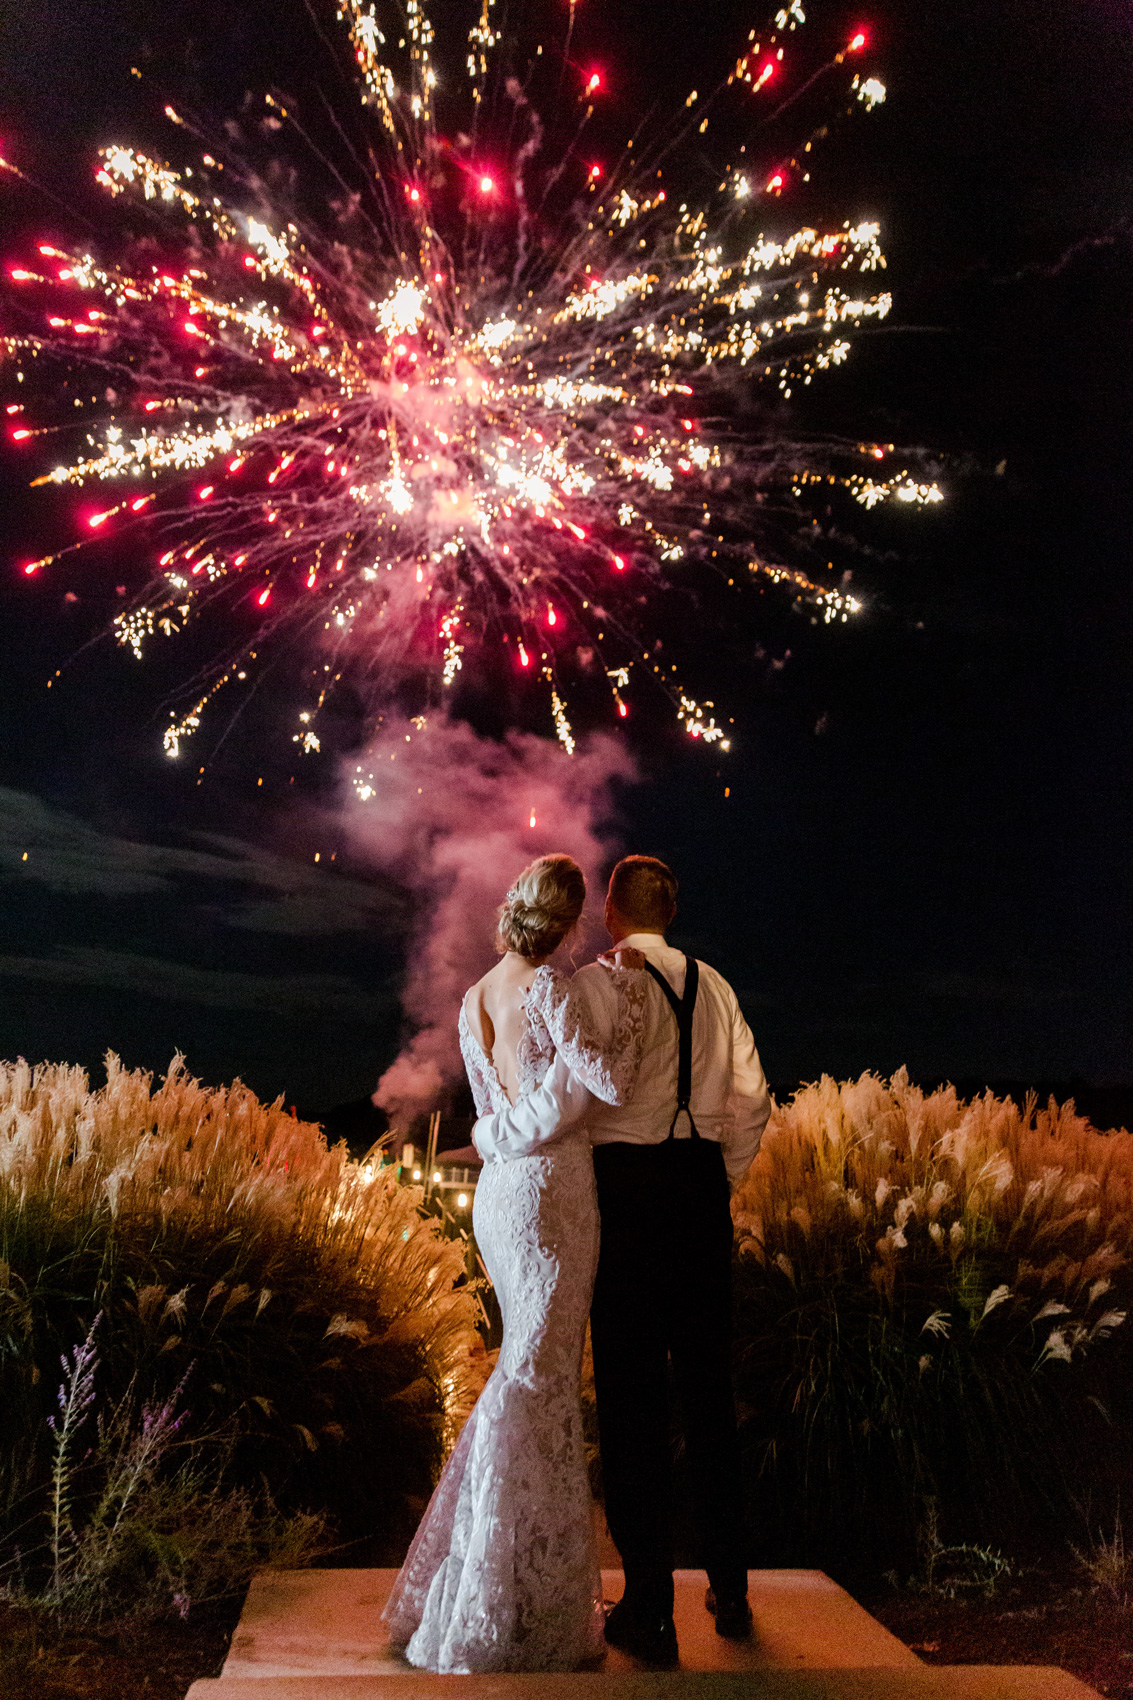 couple embracing watching fireworks